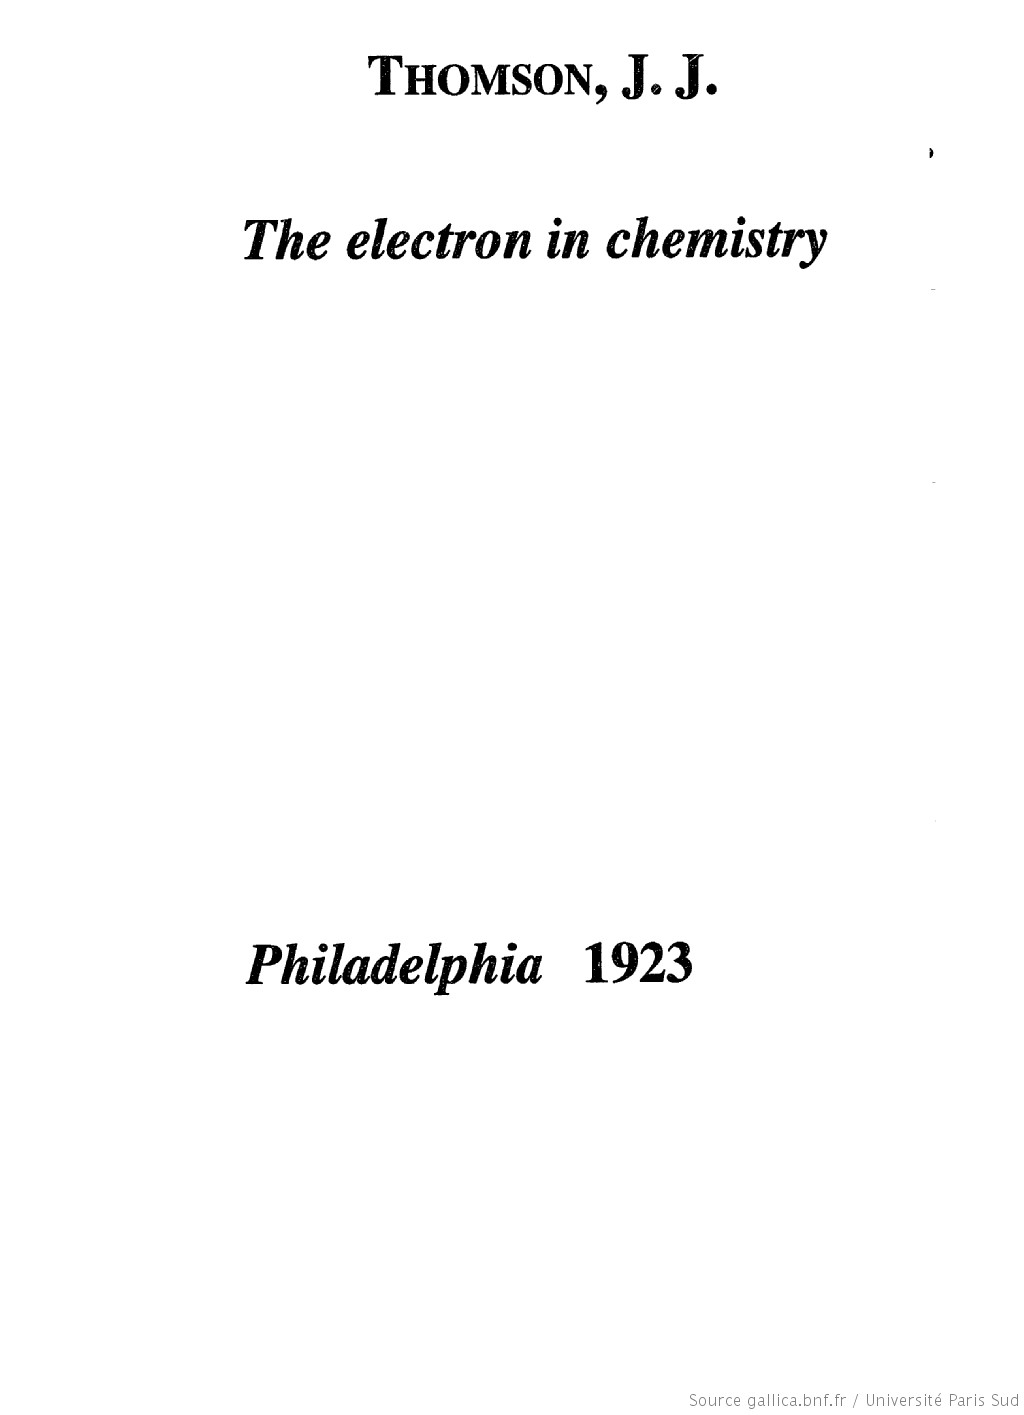 The electron in chemistry : being five lectures delivered at the Franklin institute, Philadelphia